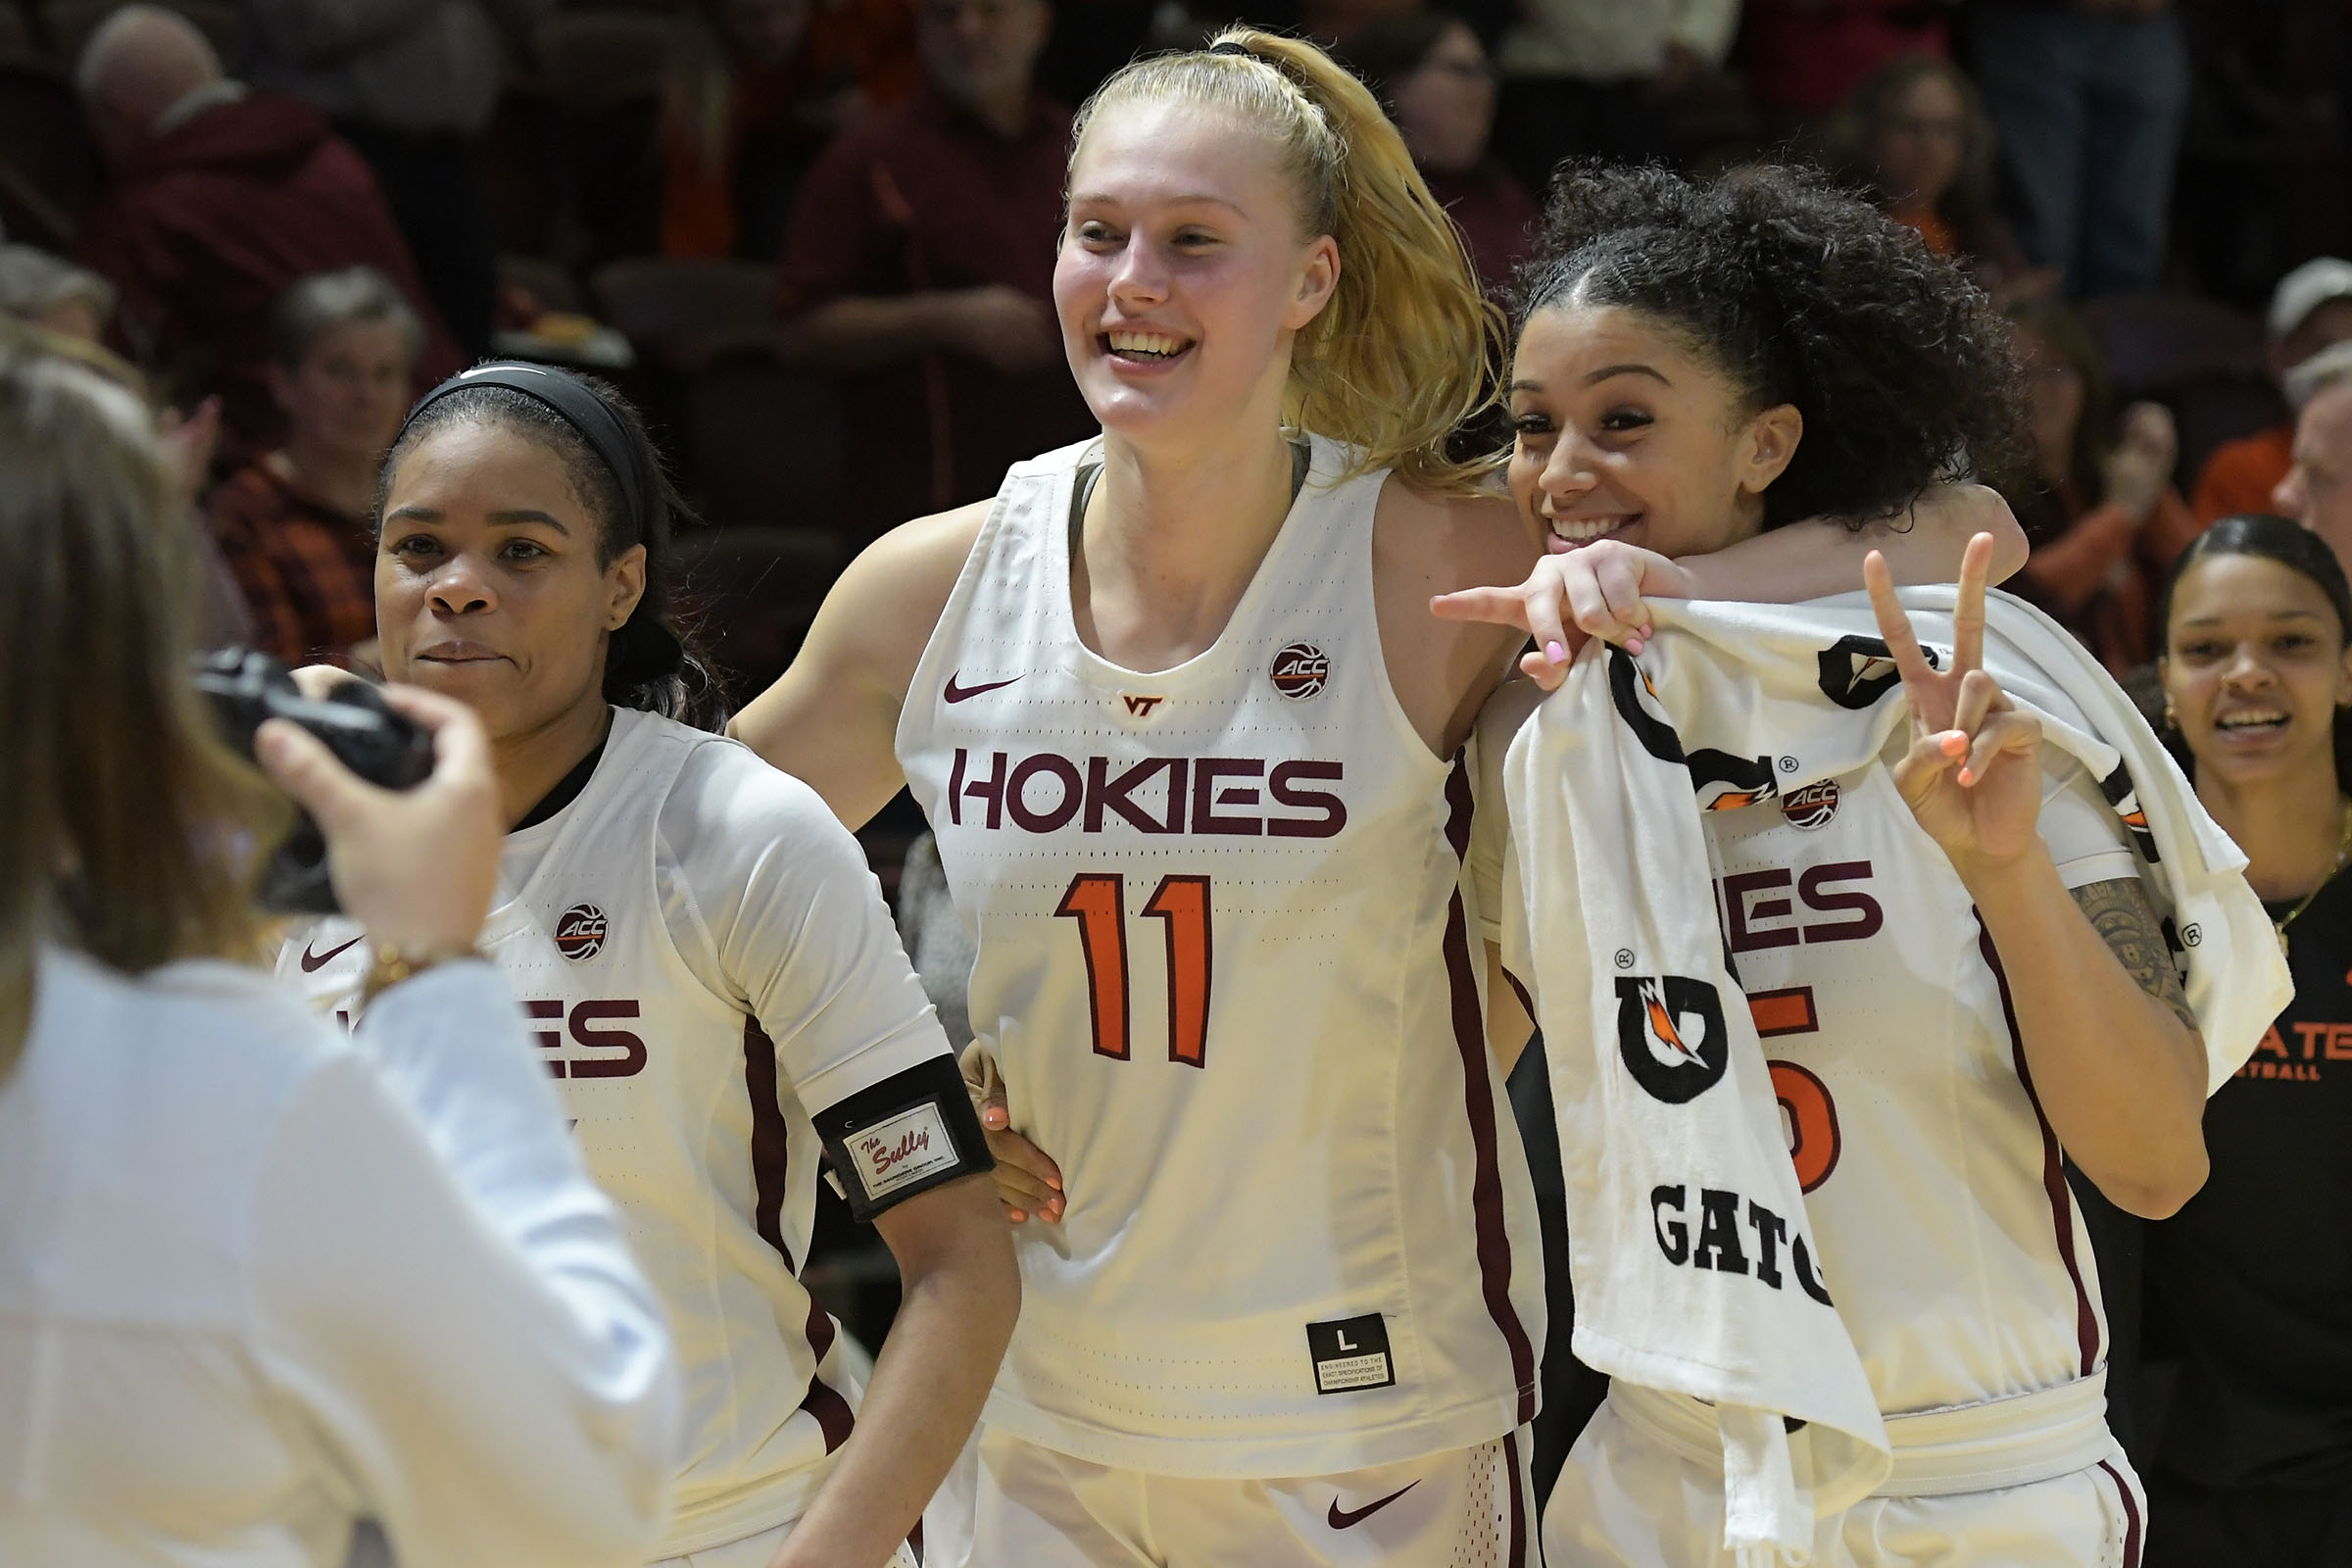 Virginia Tech women's basketball